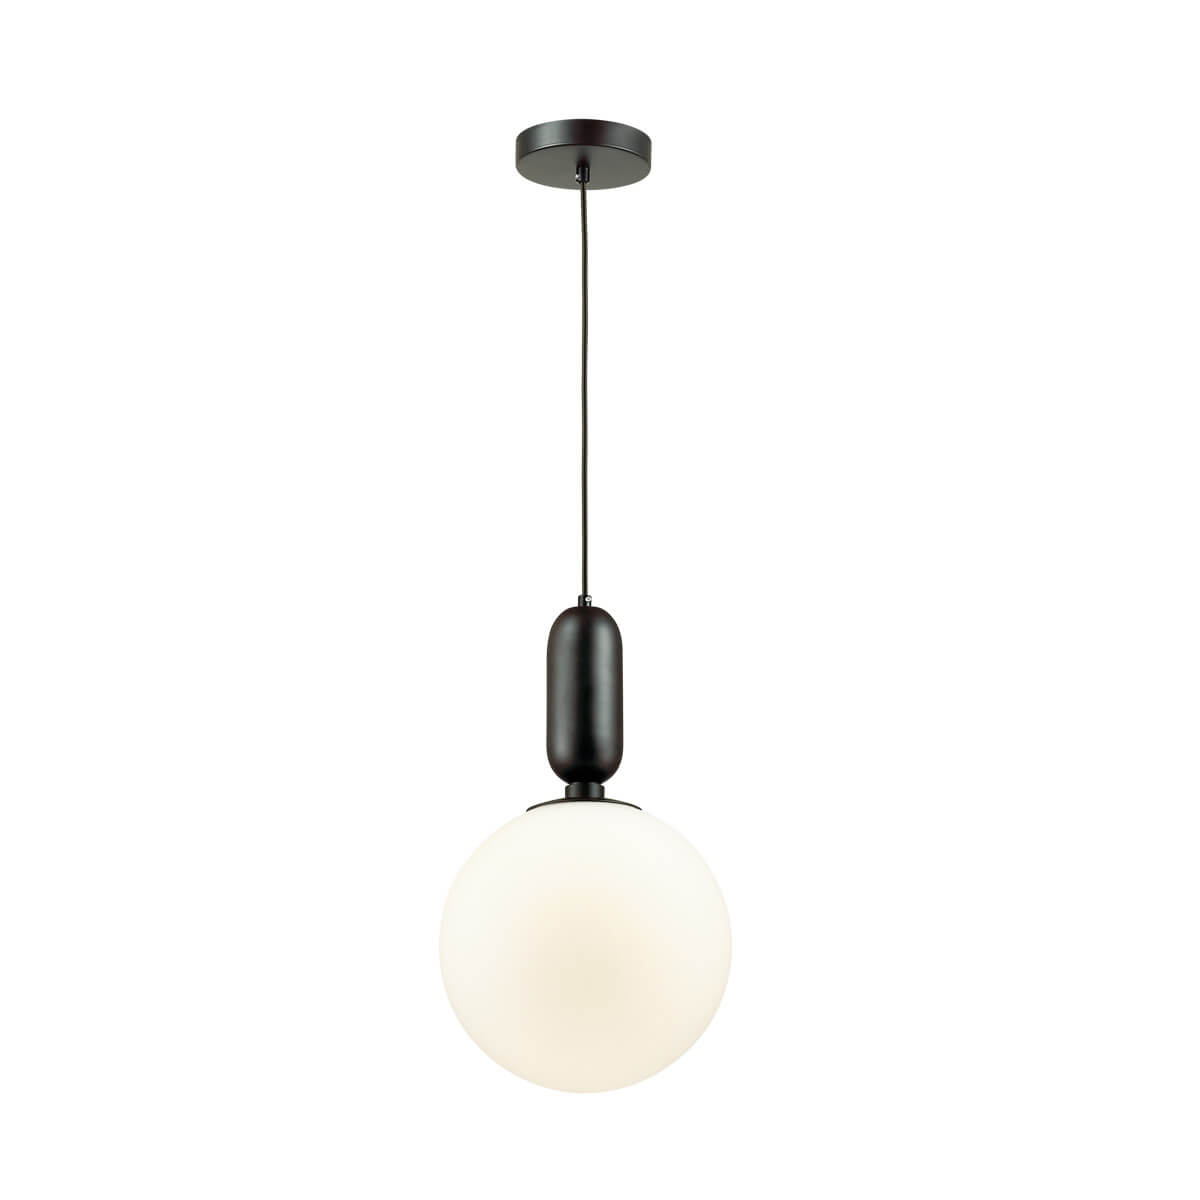 Светильник Odeon Light 4671/1 Pendant tutto bene 4671